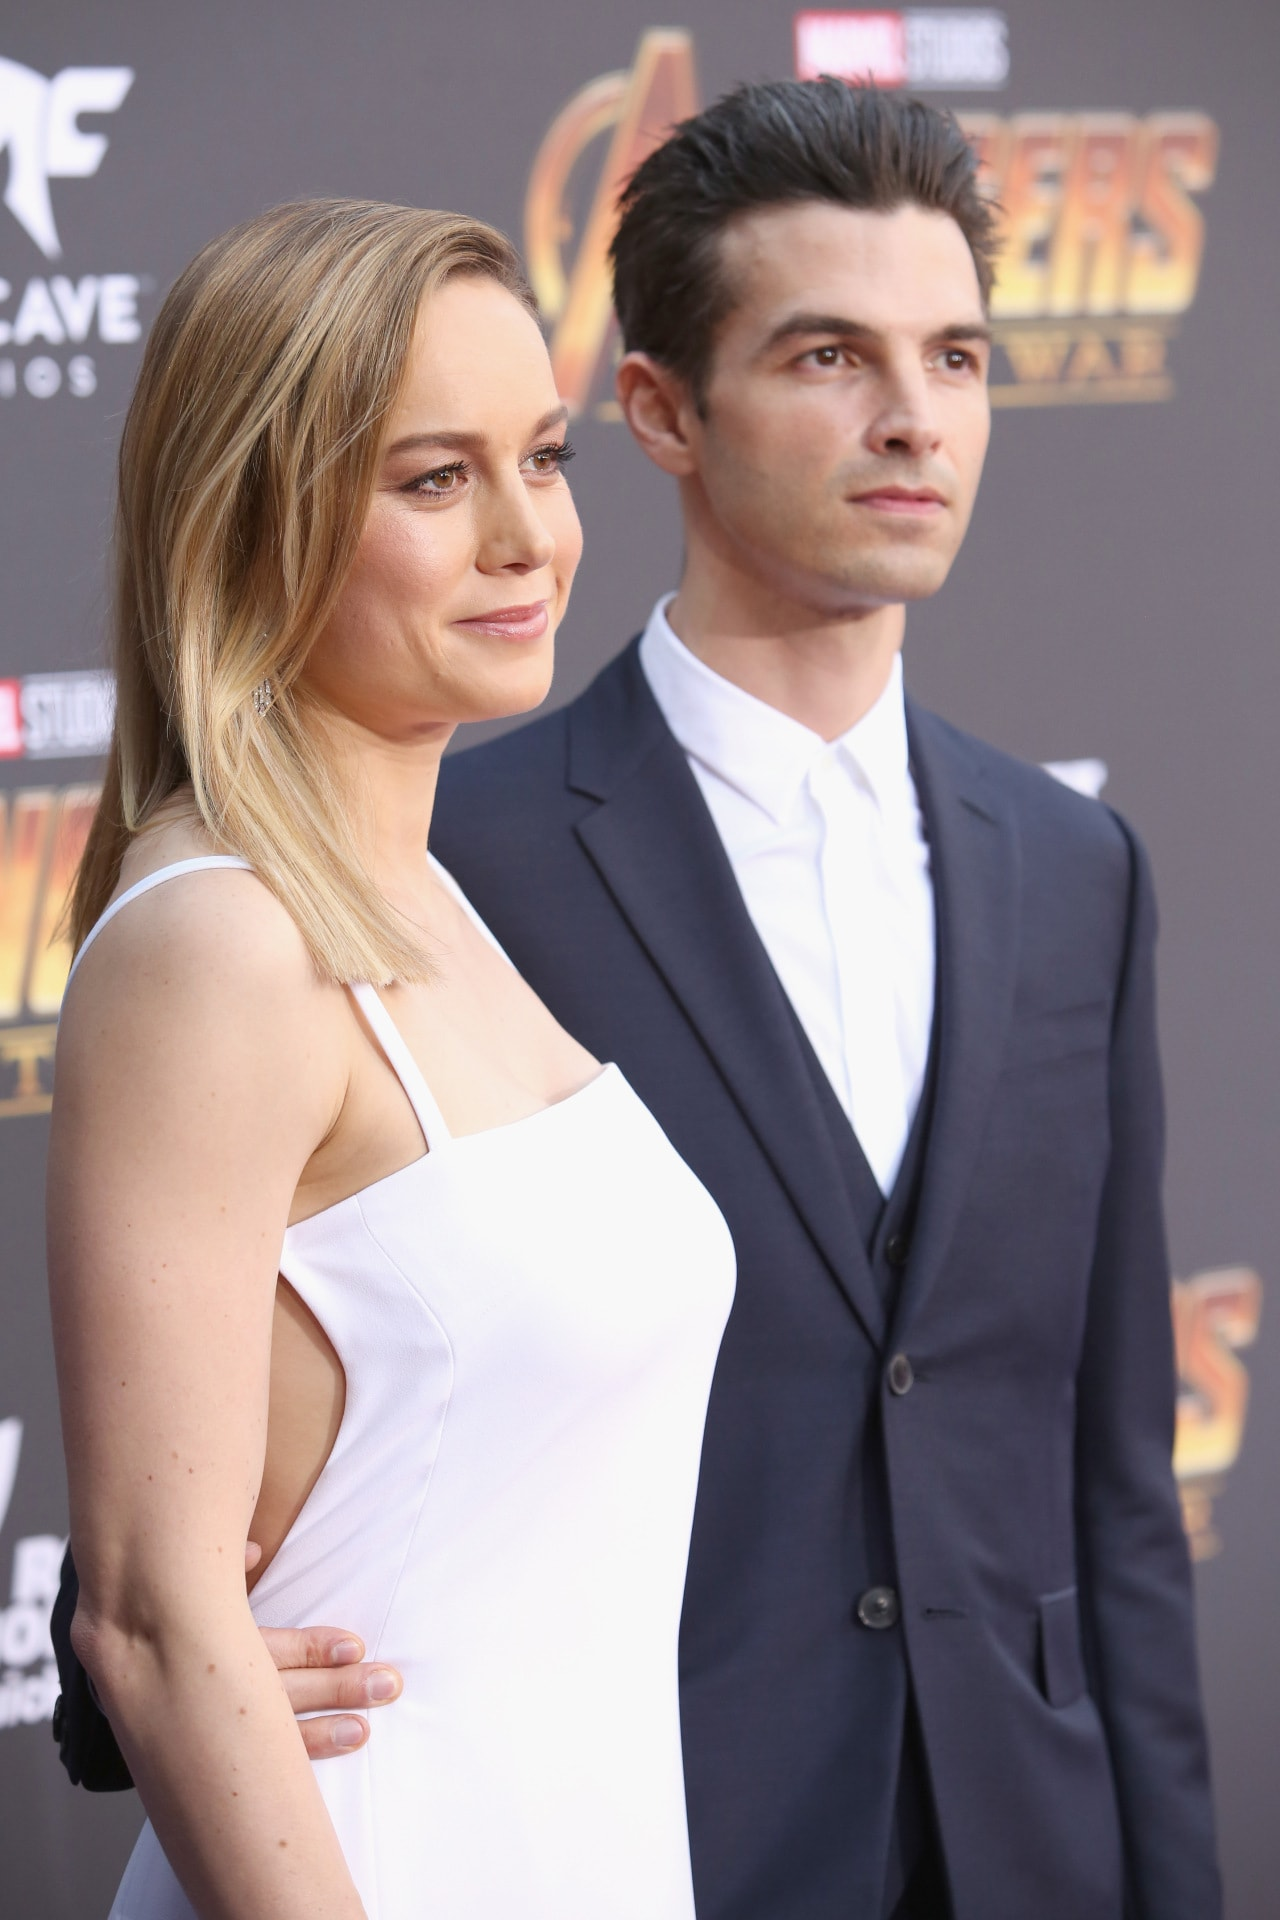 Brie Larson is not getting married